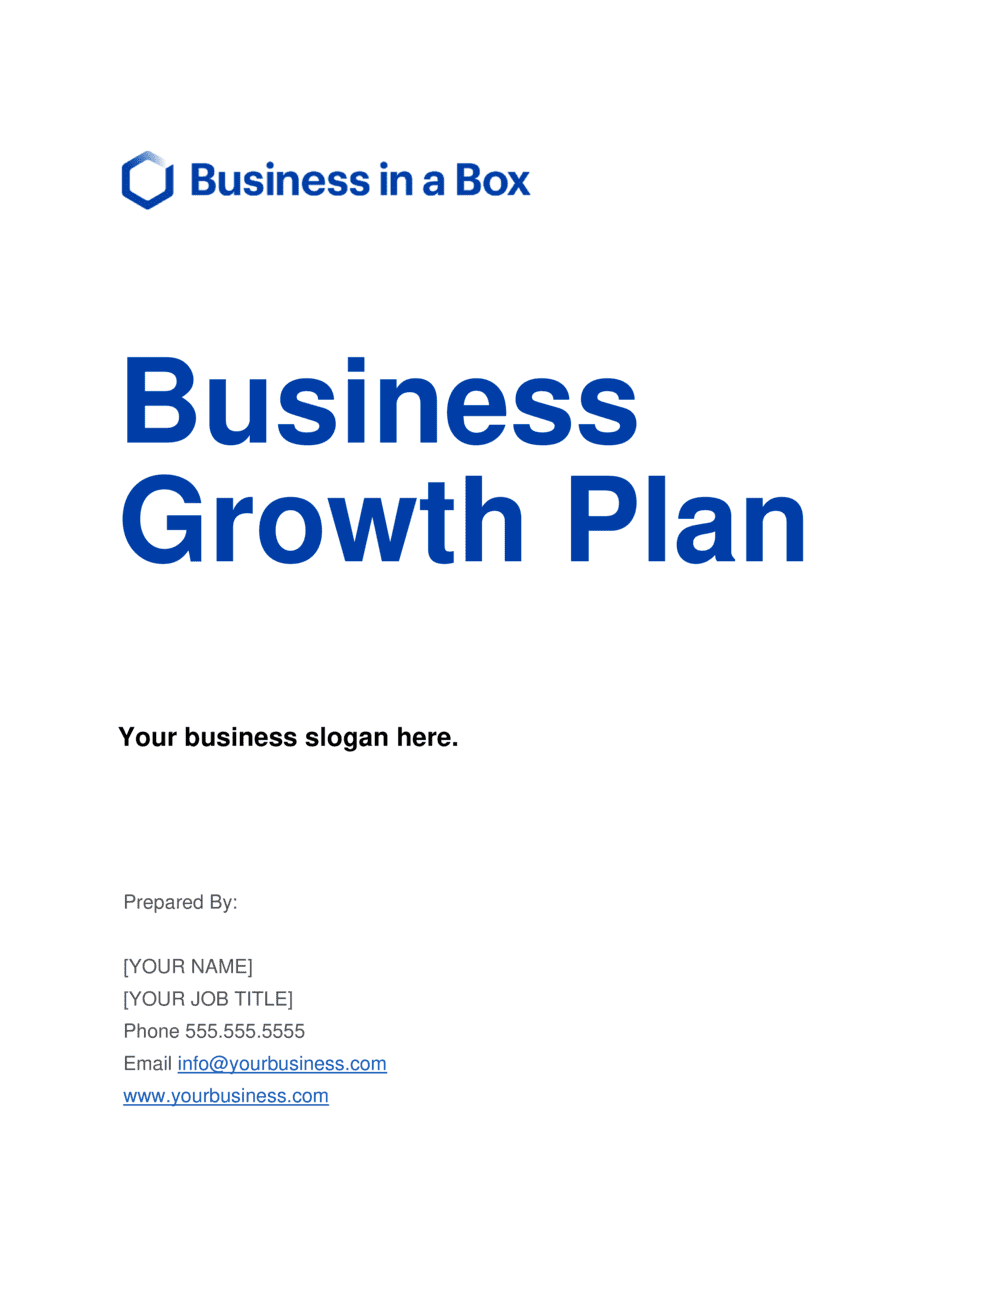 Business-in-a-Box's Business Growth Plan Template